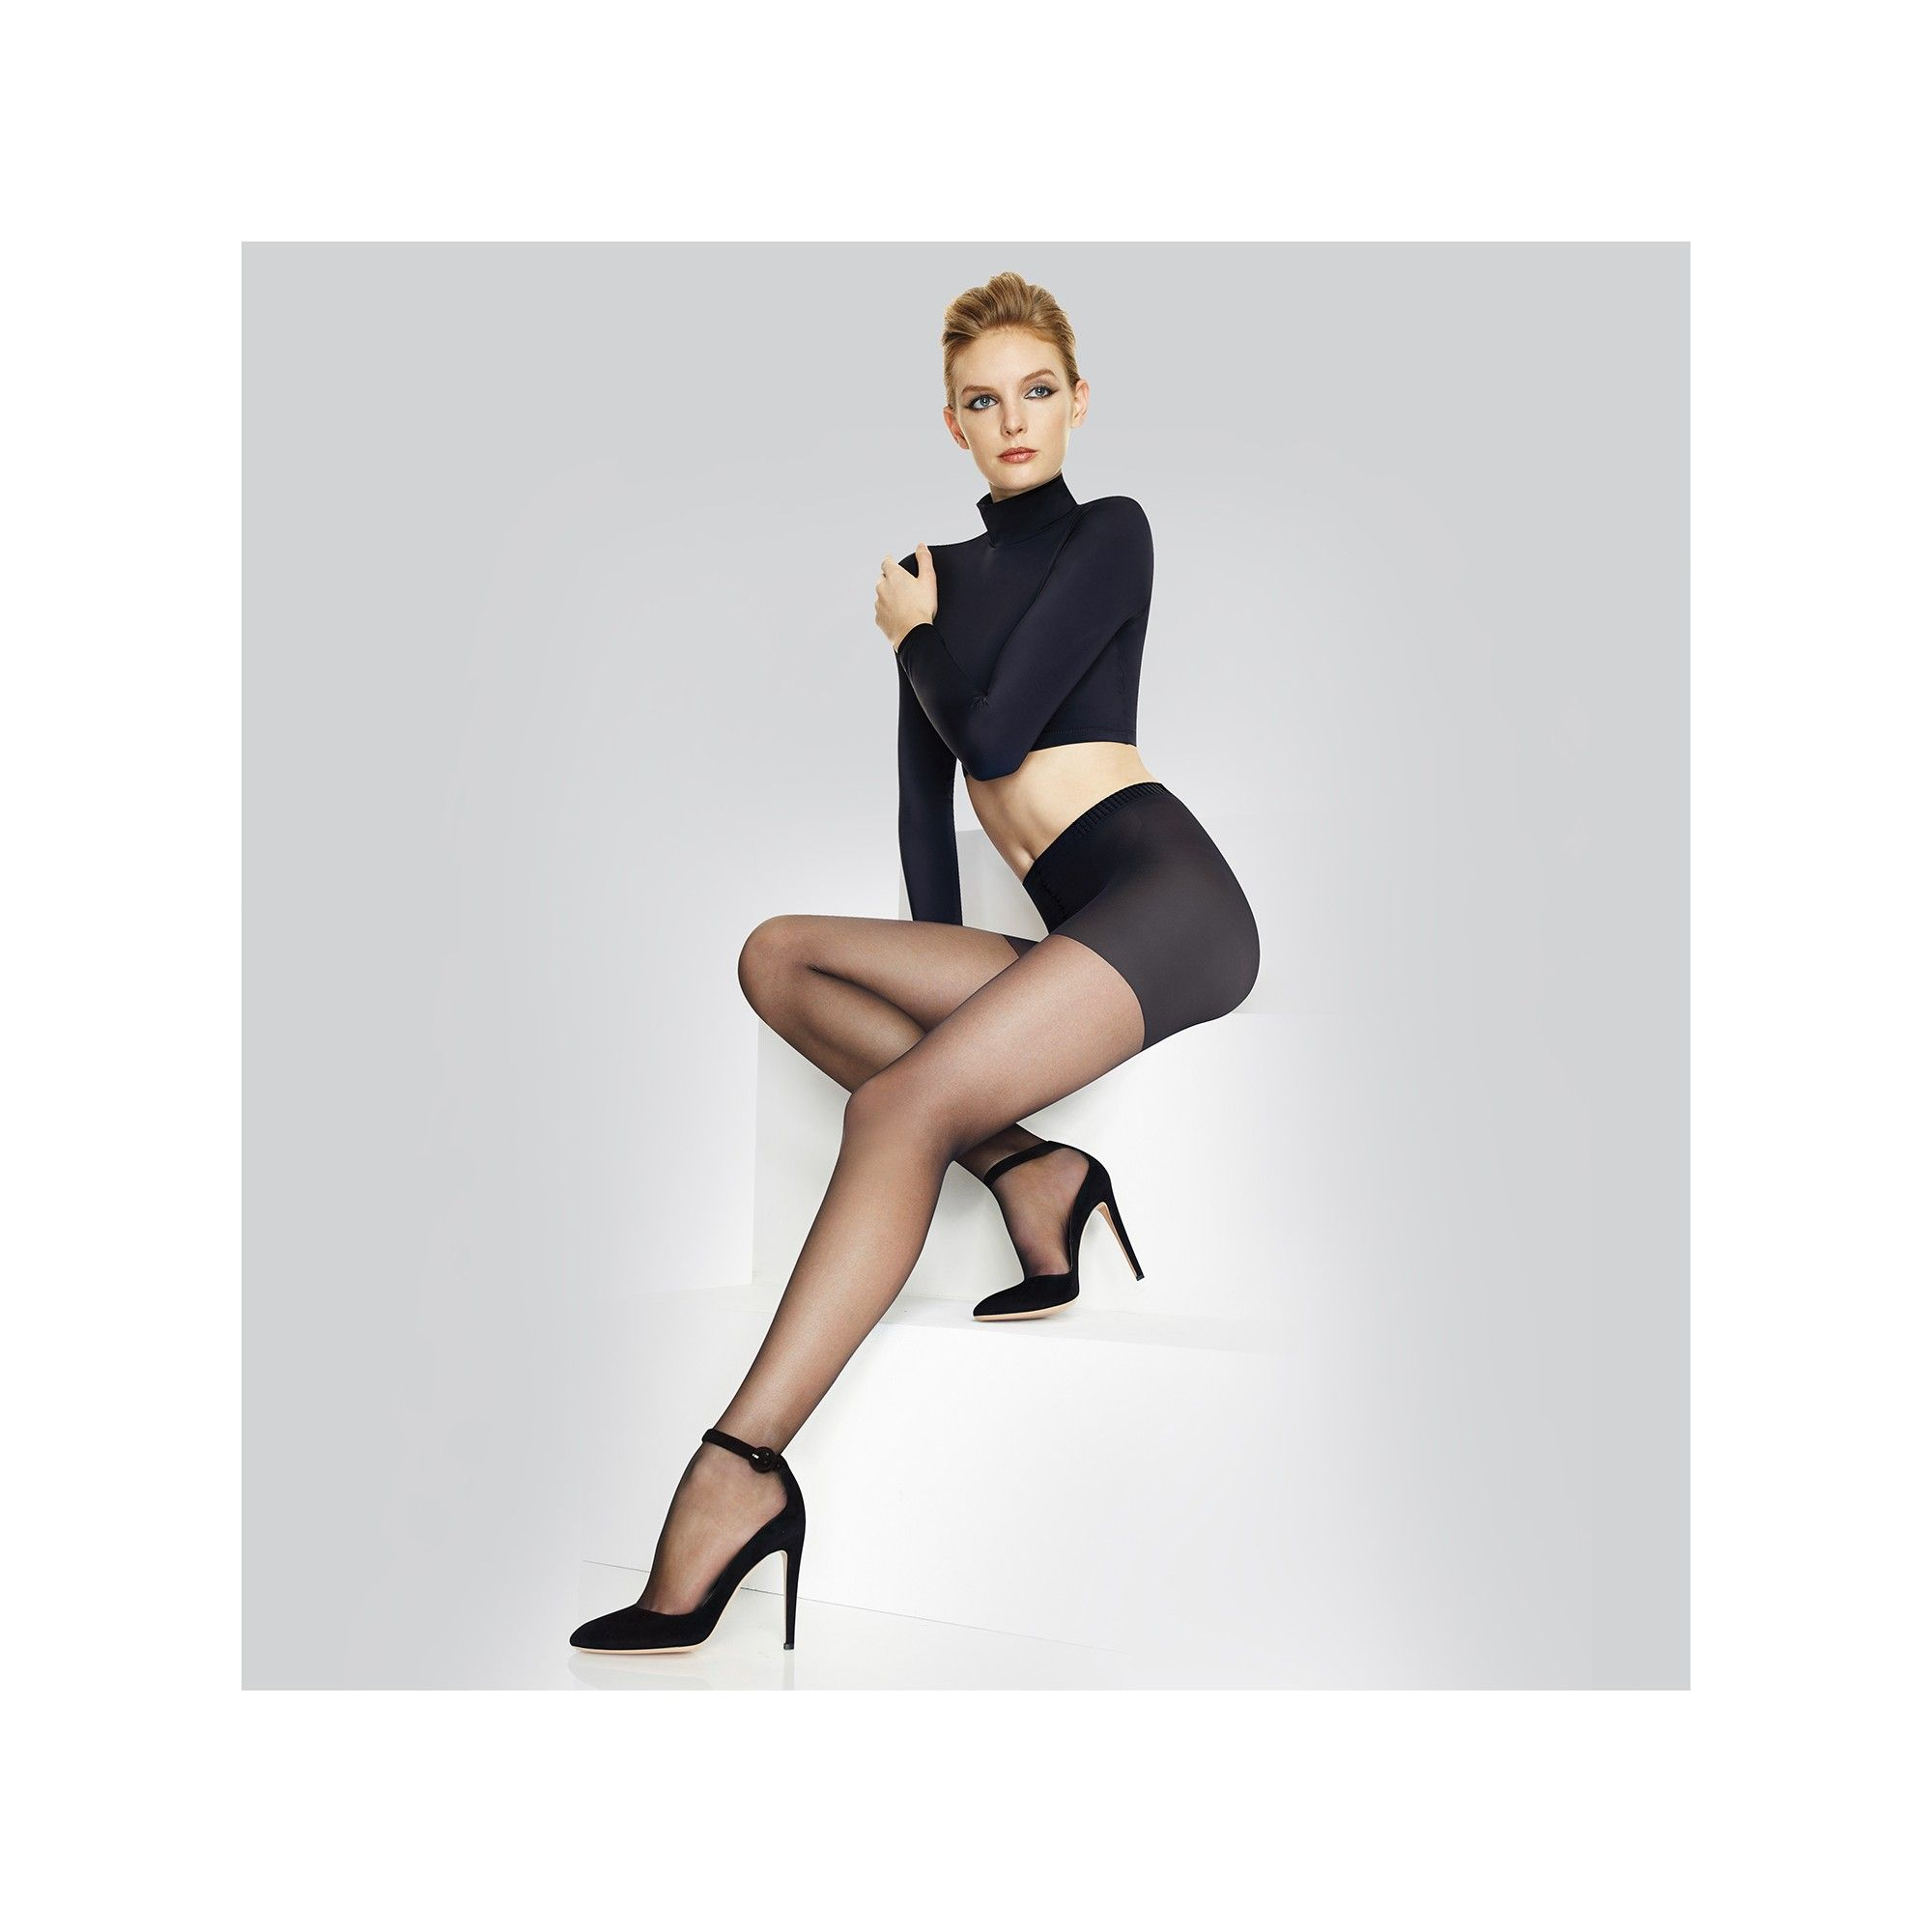 75602c4c64b Hanes Premium Women s Seasonless Tights - Black M in 2019